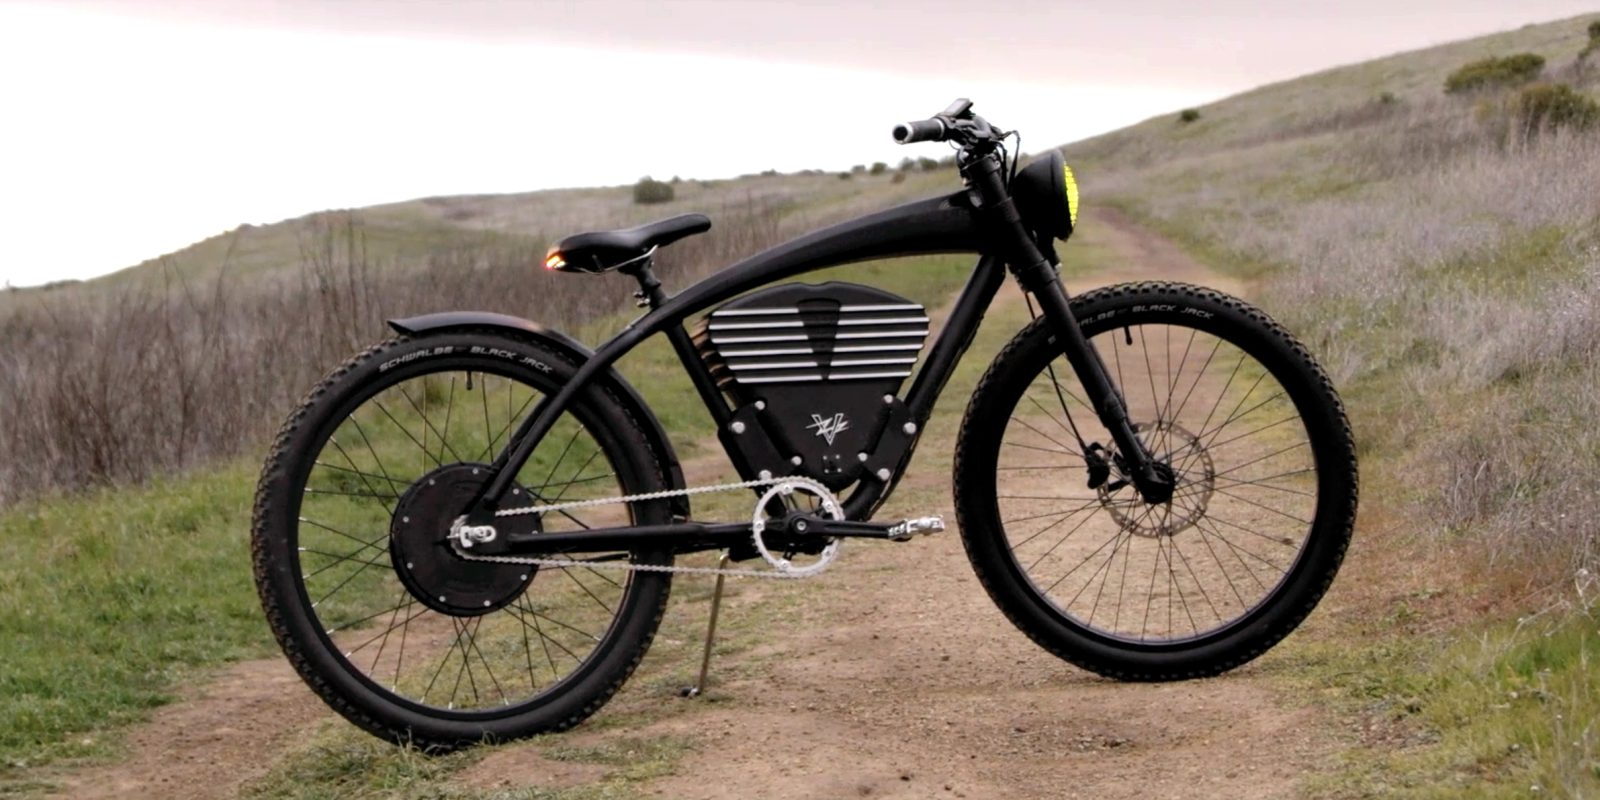 1cb5df5d3a8 WWII-inspired electric bicycle pushes the envelope at 36 mph - Electrek